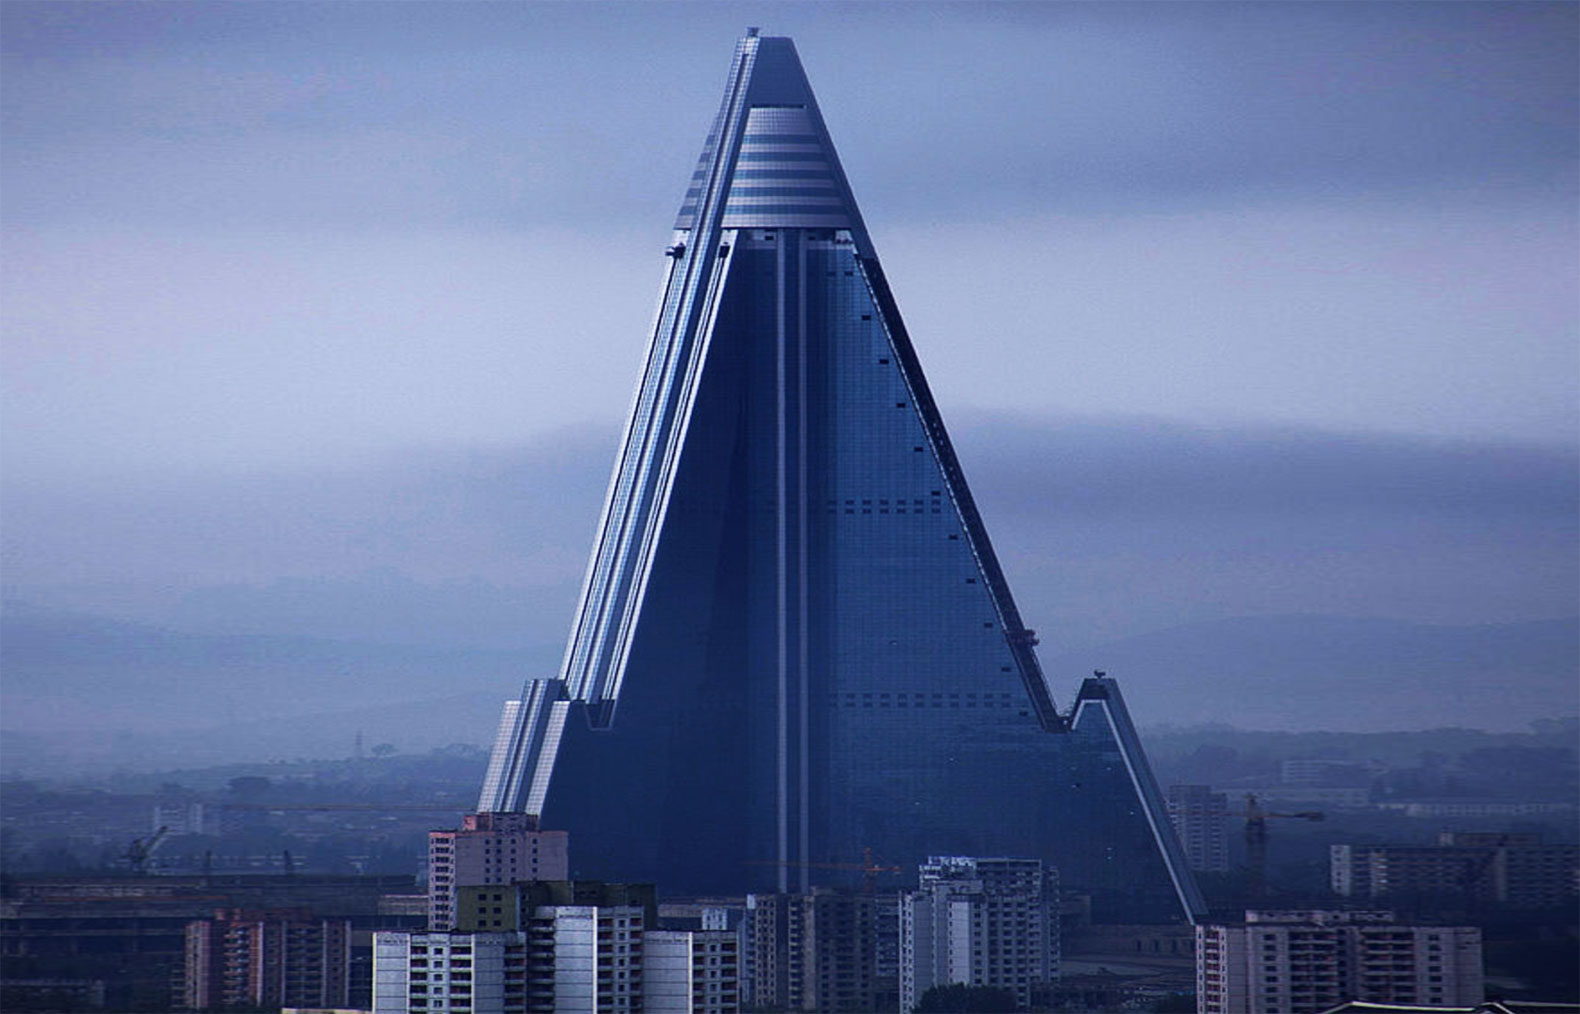 North korea s hotel of doom is the world s largest for Tallest hotel in the world